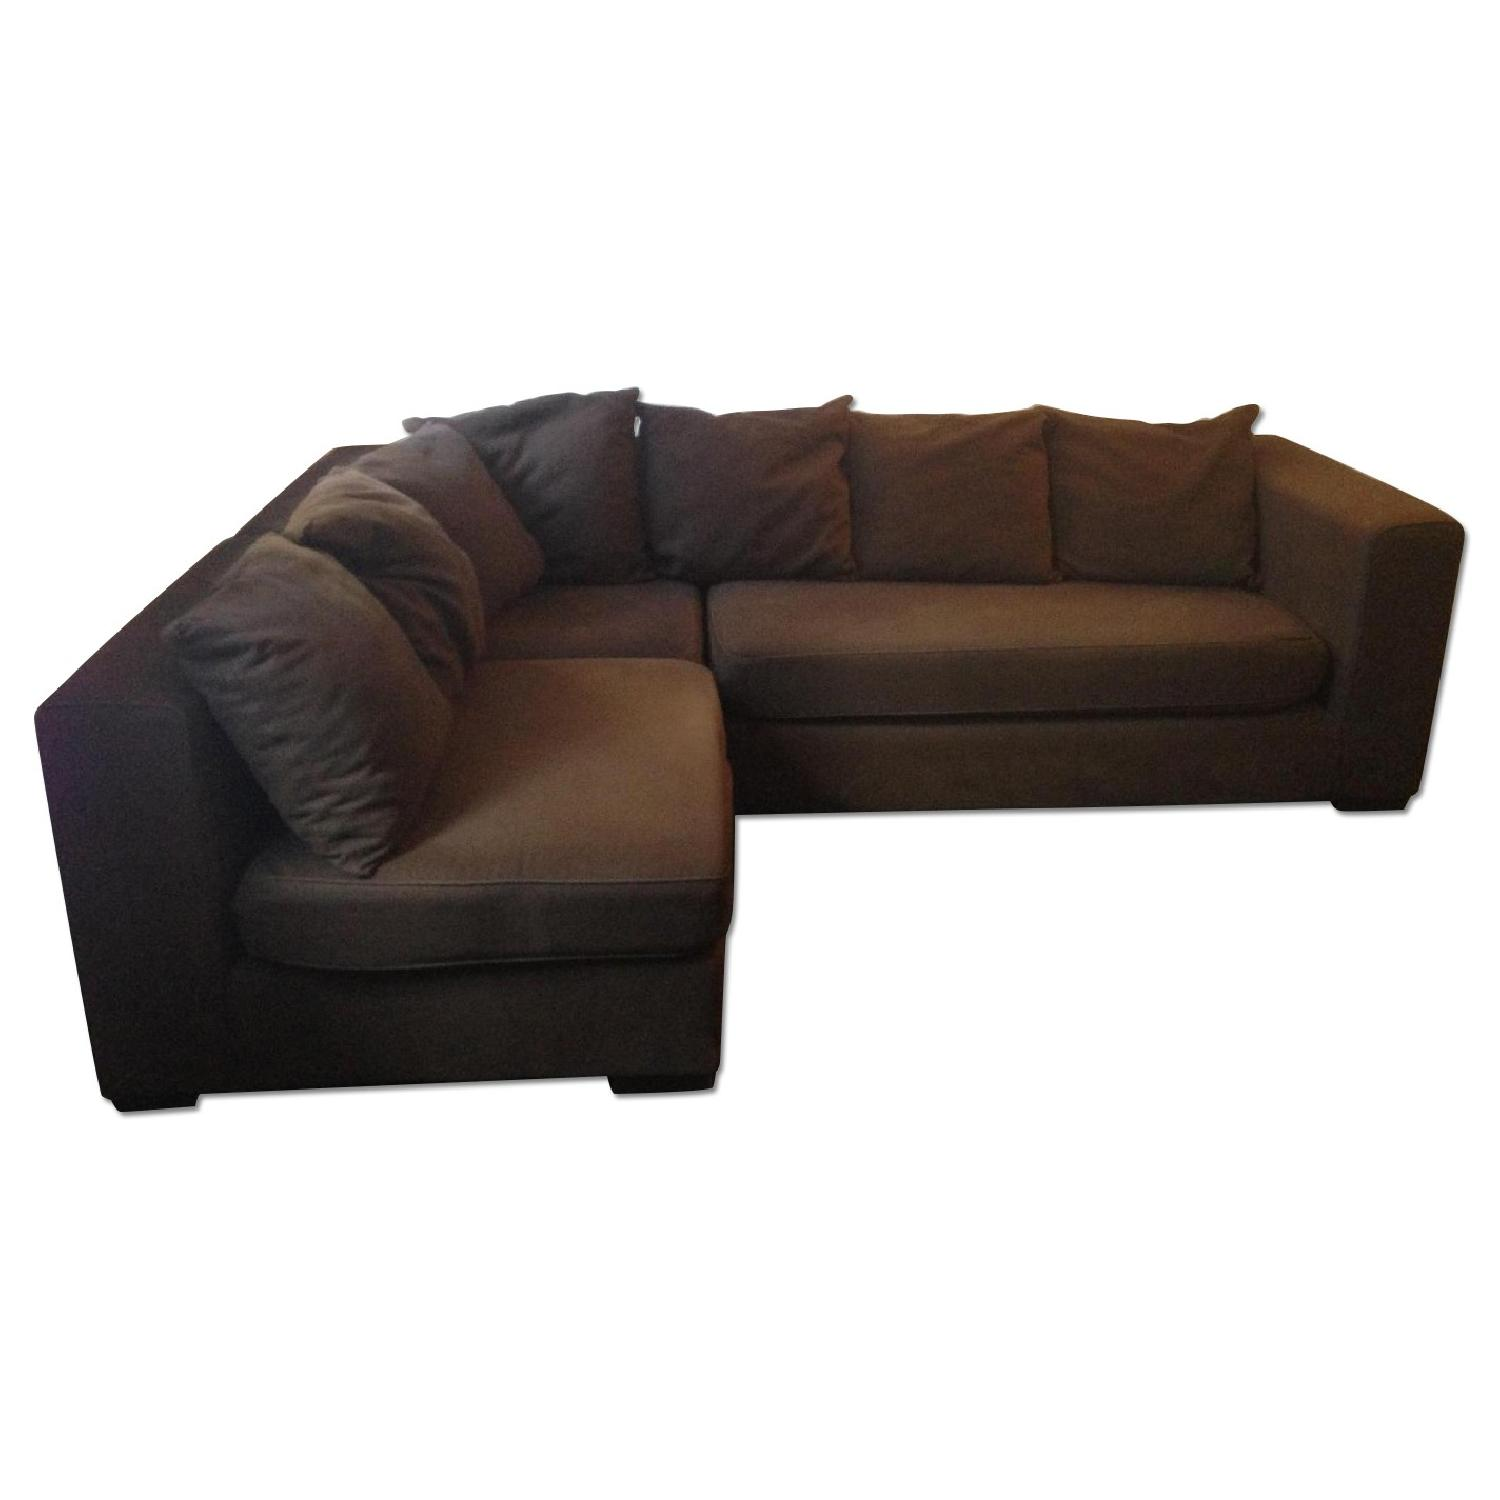 West Elm Walton 3 Piece Sectional Sofa in Brown - image-0